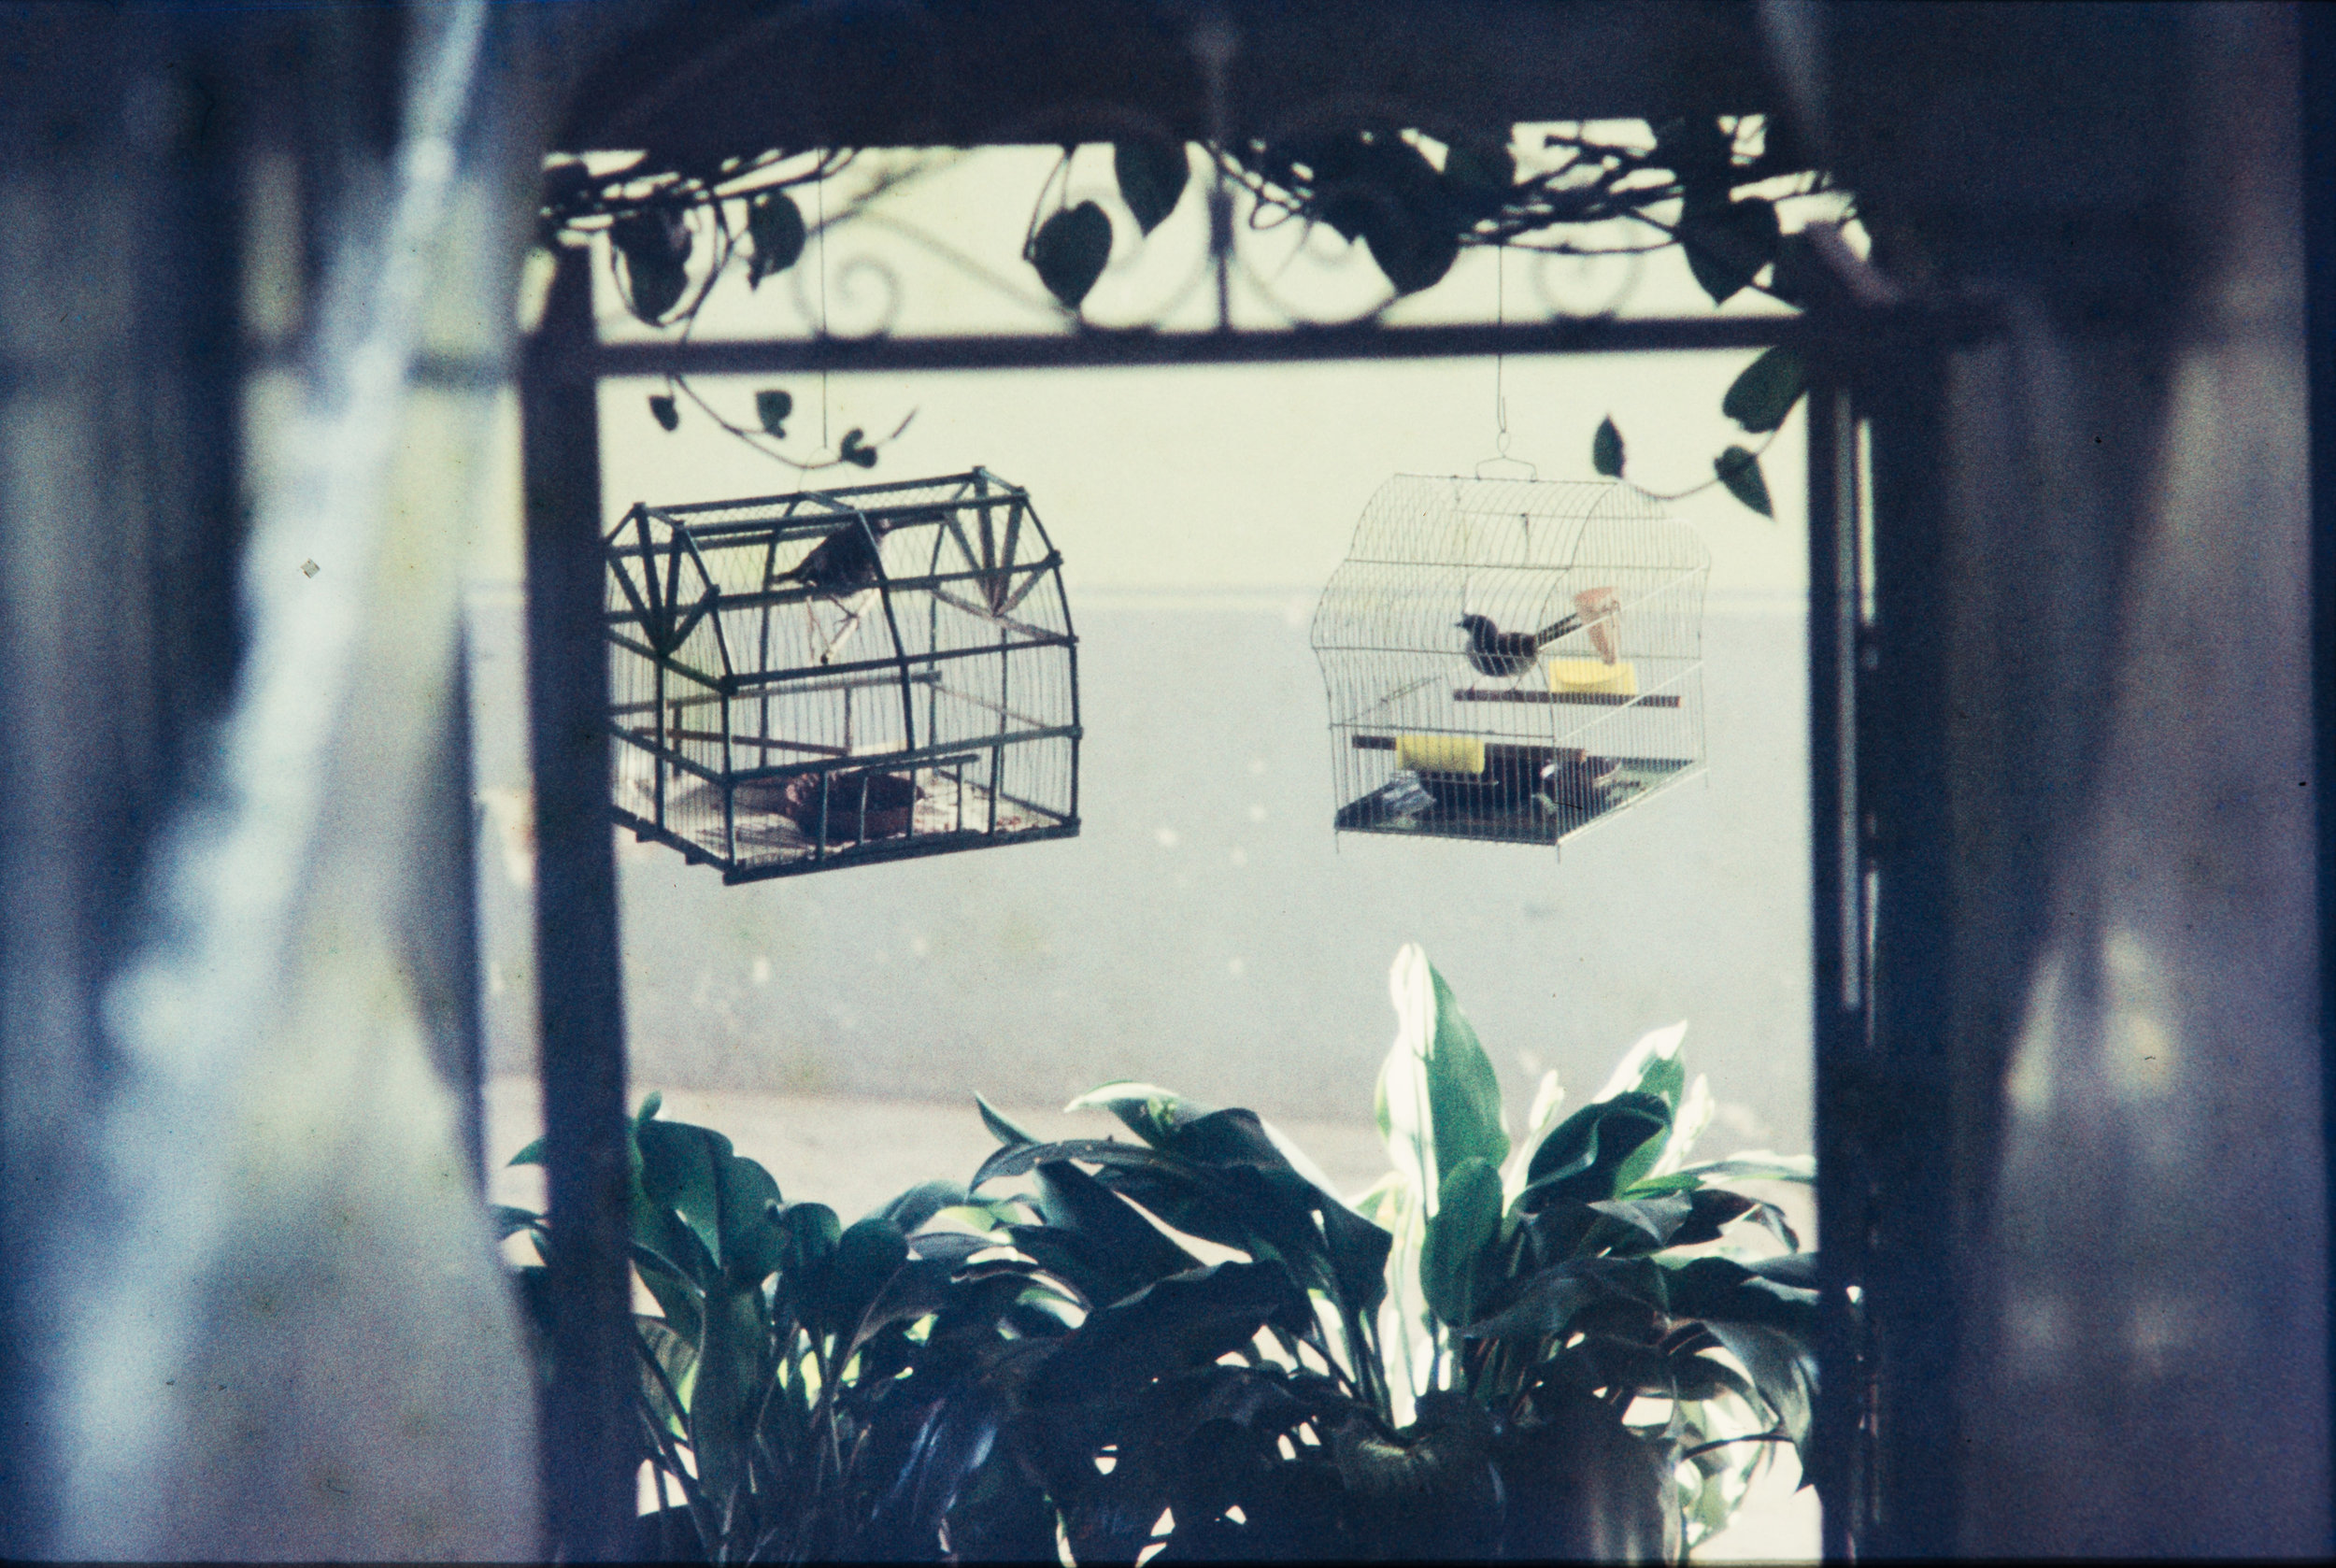 Two bird cages, Mexico, 1957